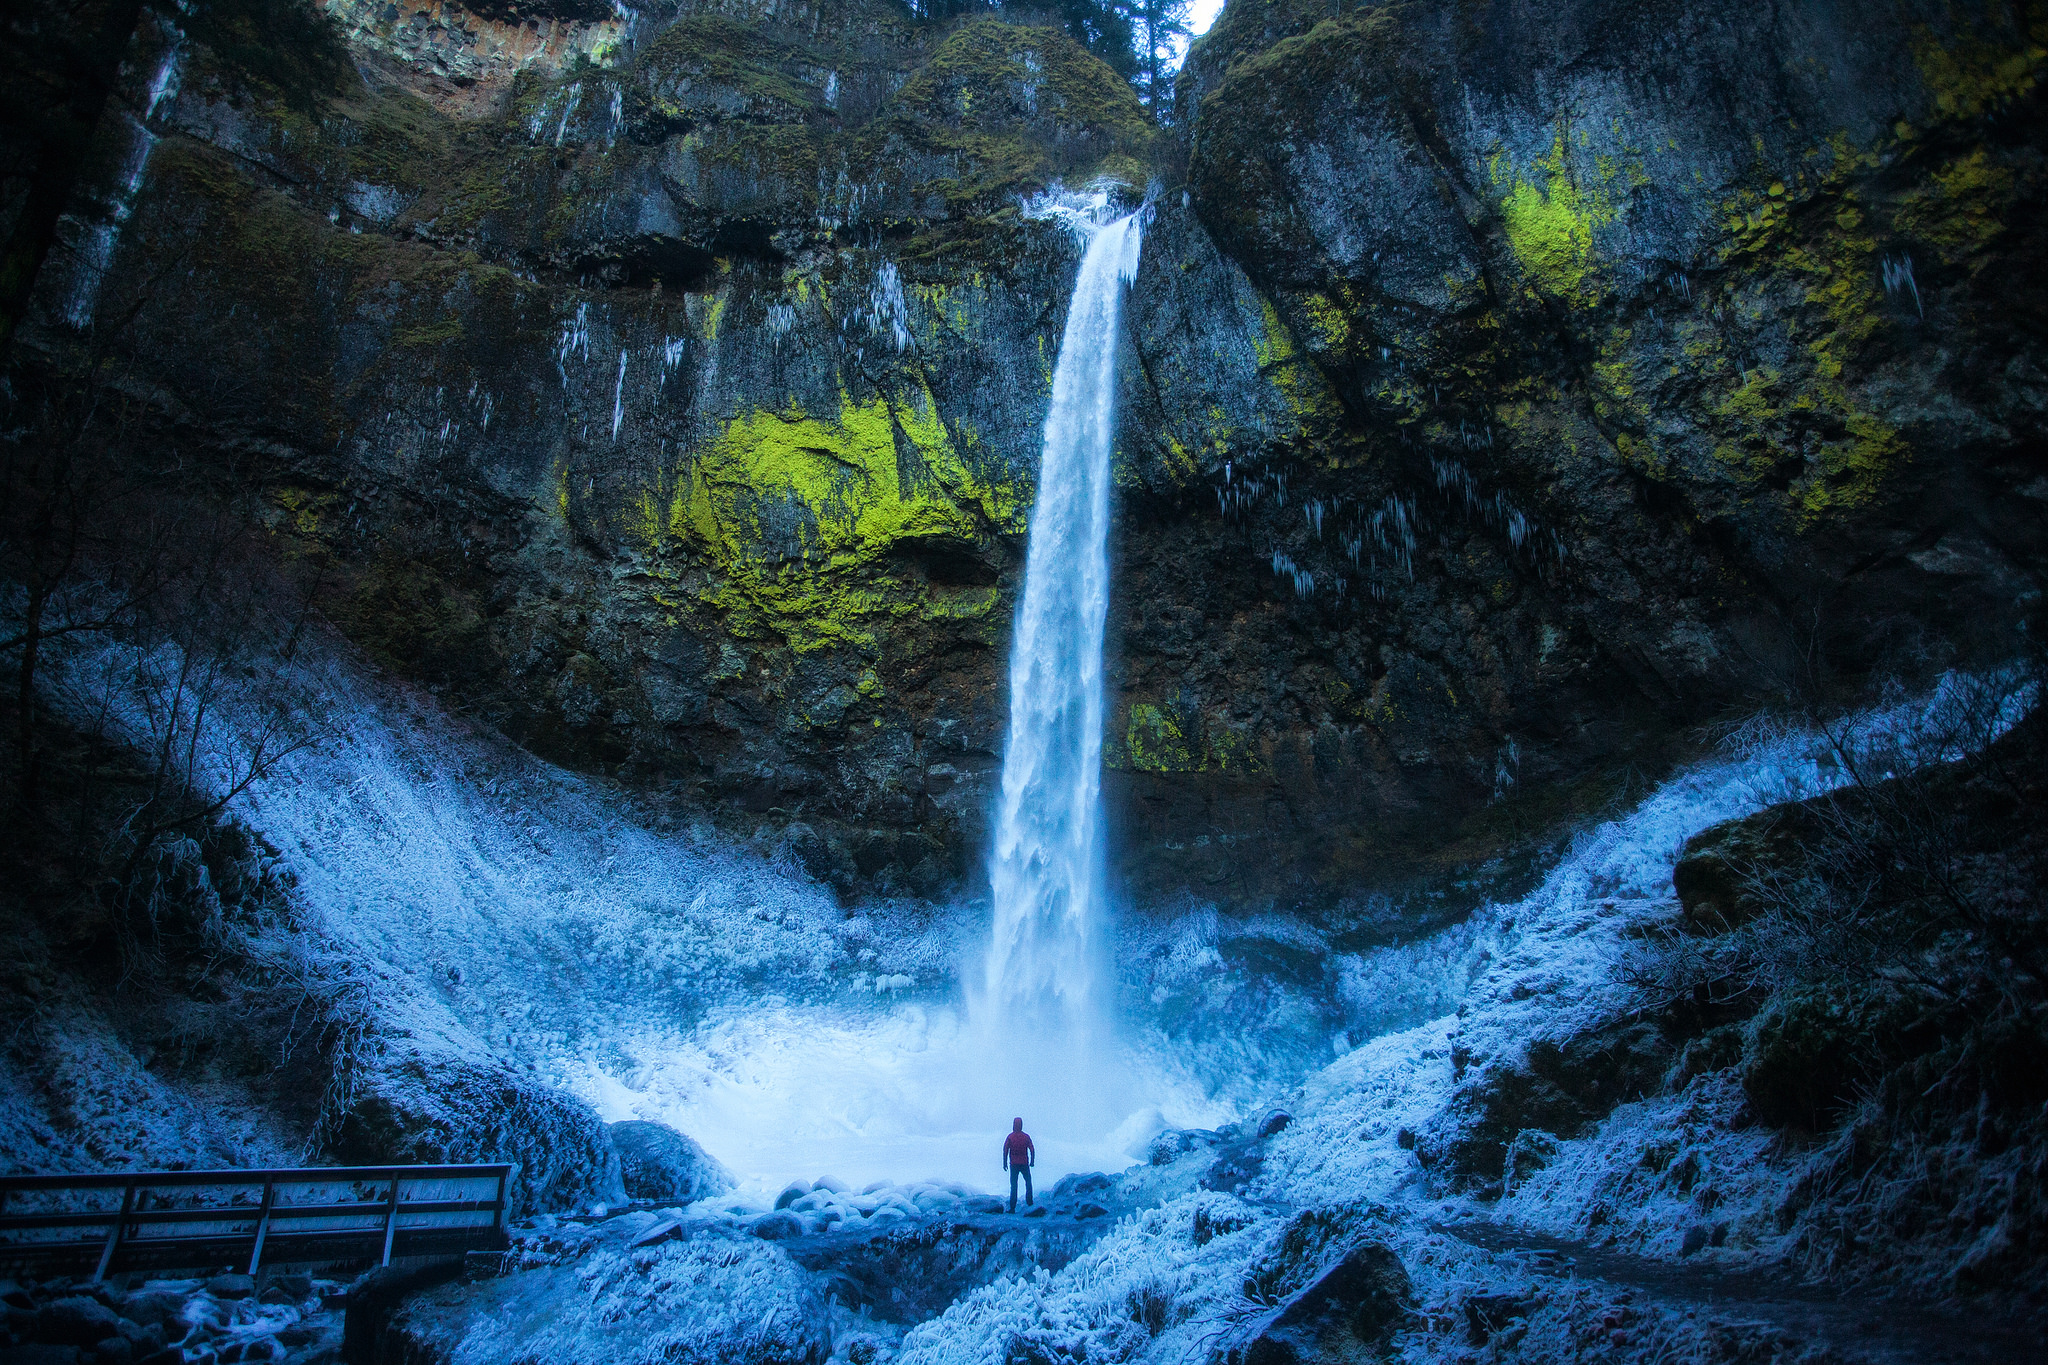 Oregon State Email >> Here Are The 8 Best Winter Hikes In Oregon.... They Are Simply Majestic